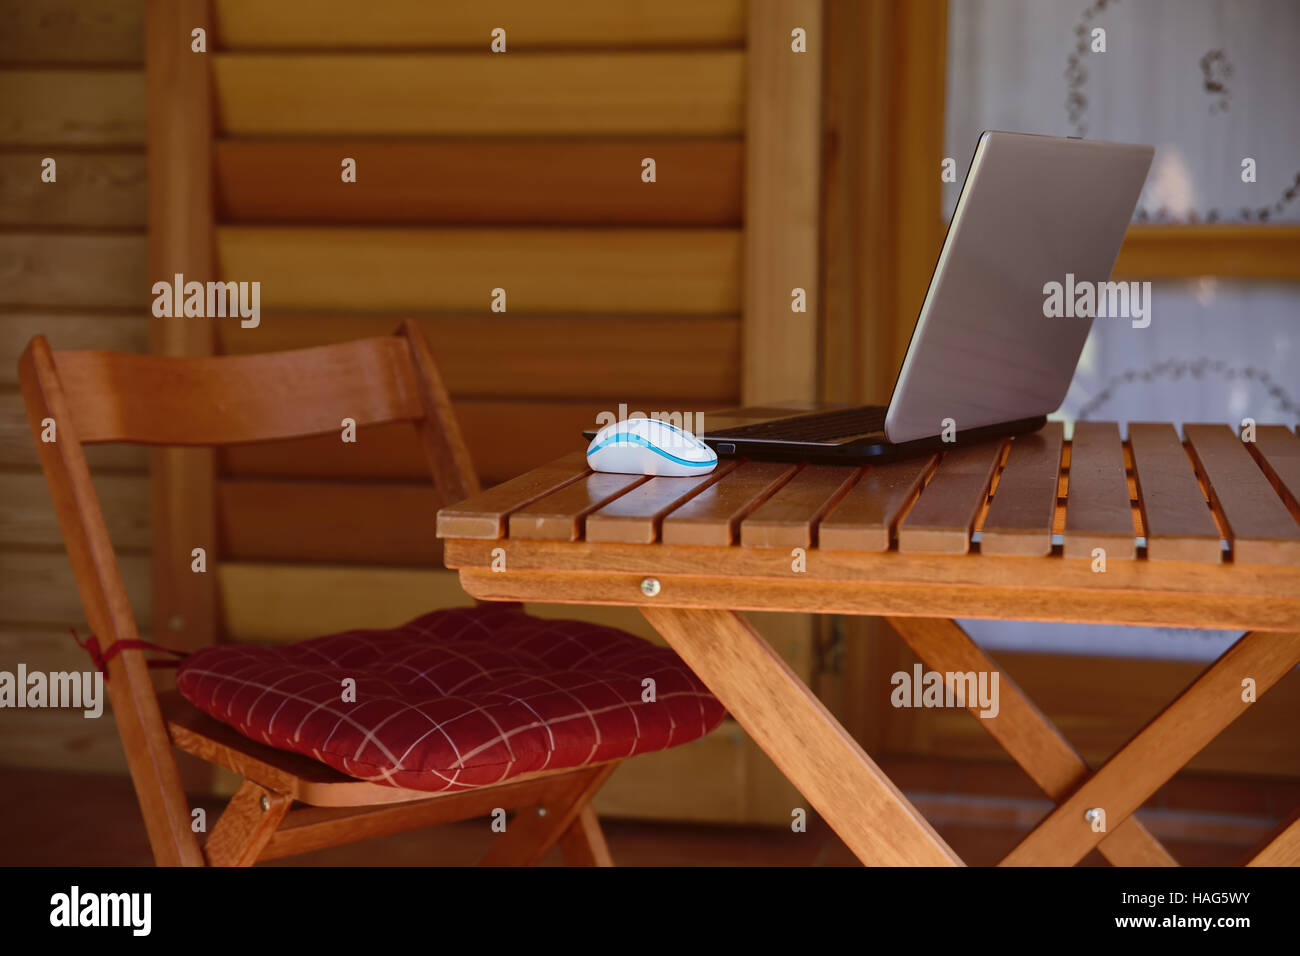 nomad work concept image with computer on wood table and sunlight, blurred trees of nature park background and summer - Stock Image